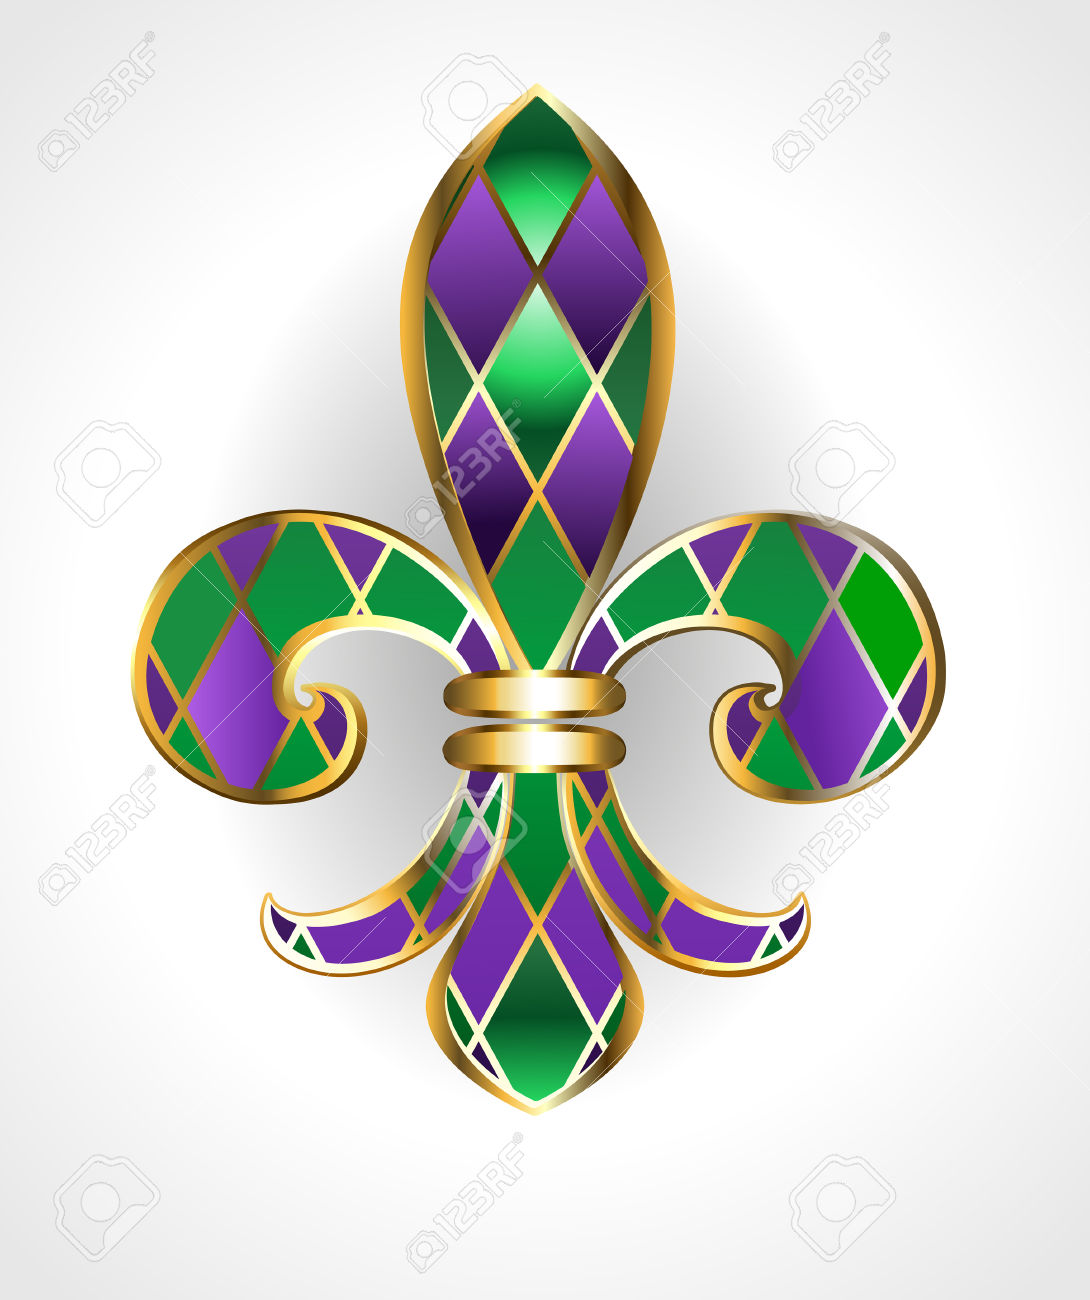 Gold Jewelry Lily, Decorated With Green And Purple Diamonds On.